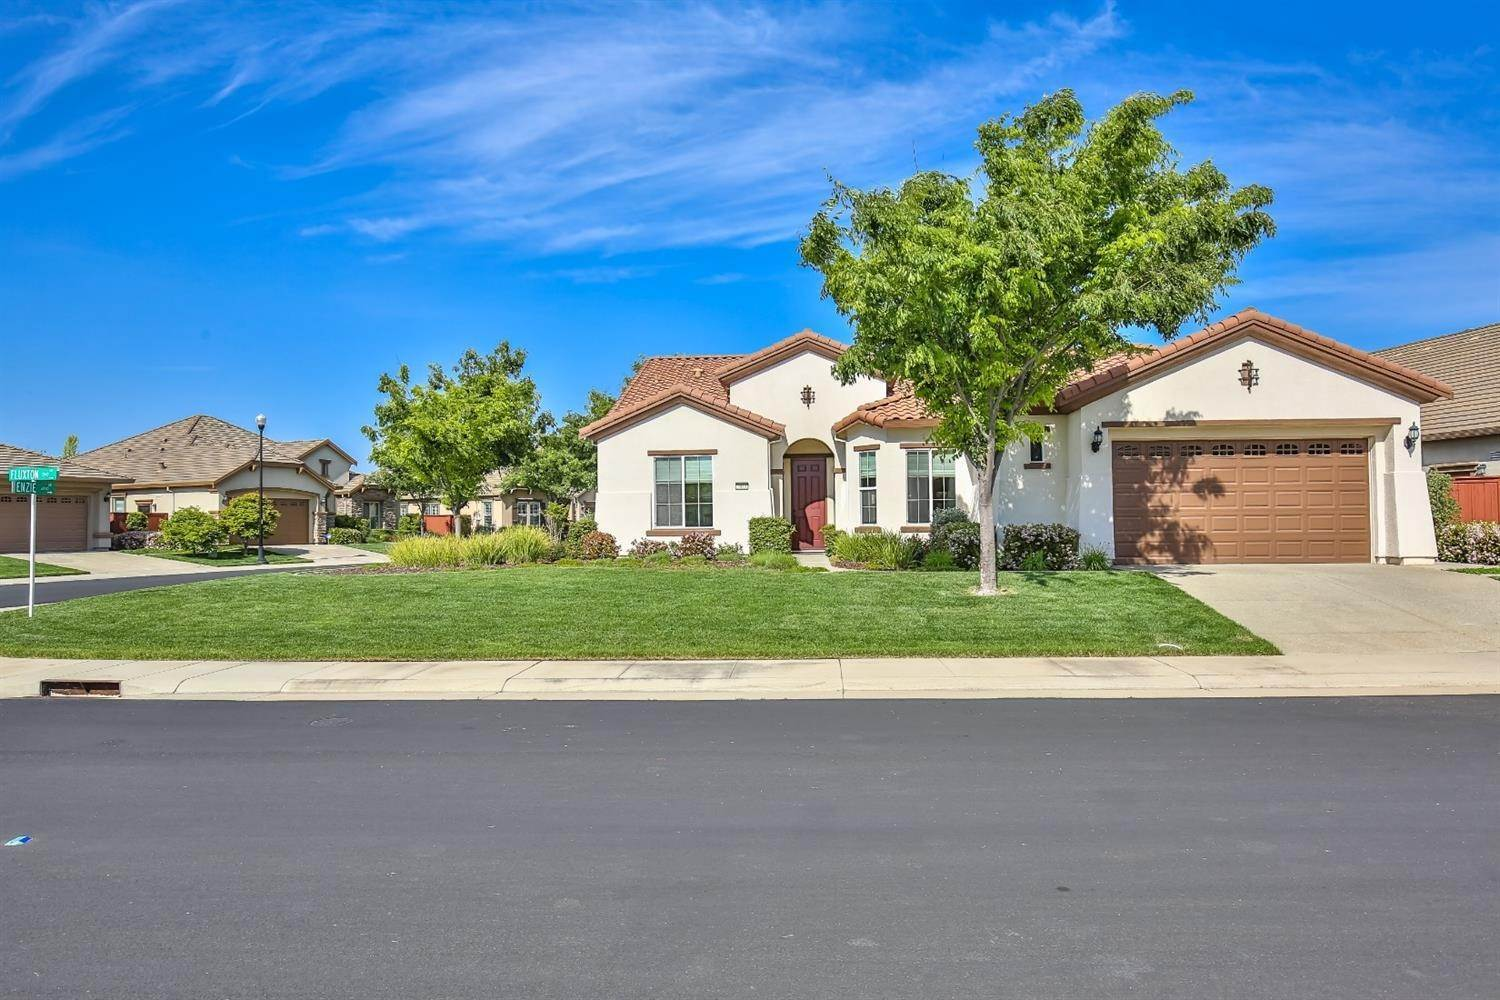 Single Family Homes for Active at 2040 Fluxton Drive Roseville, California 95747 United States